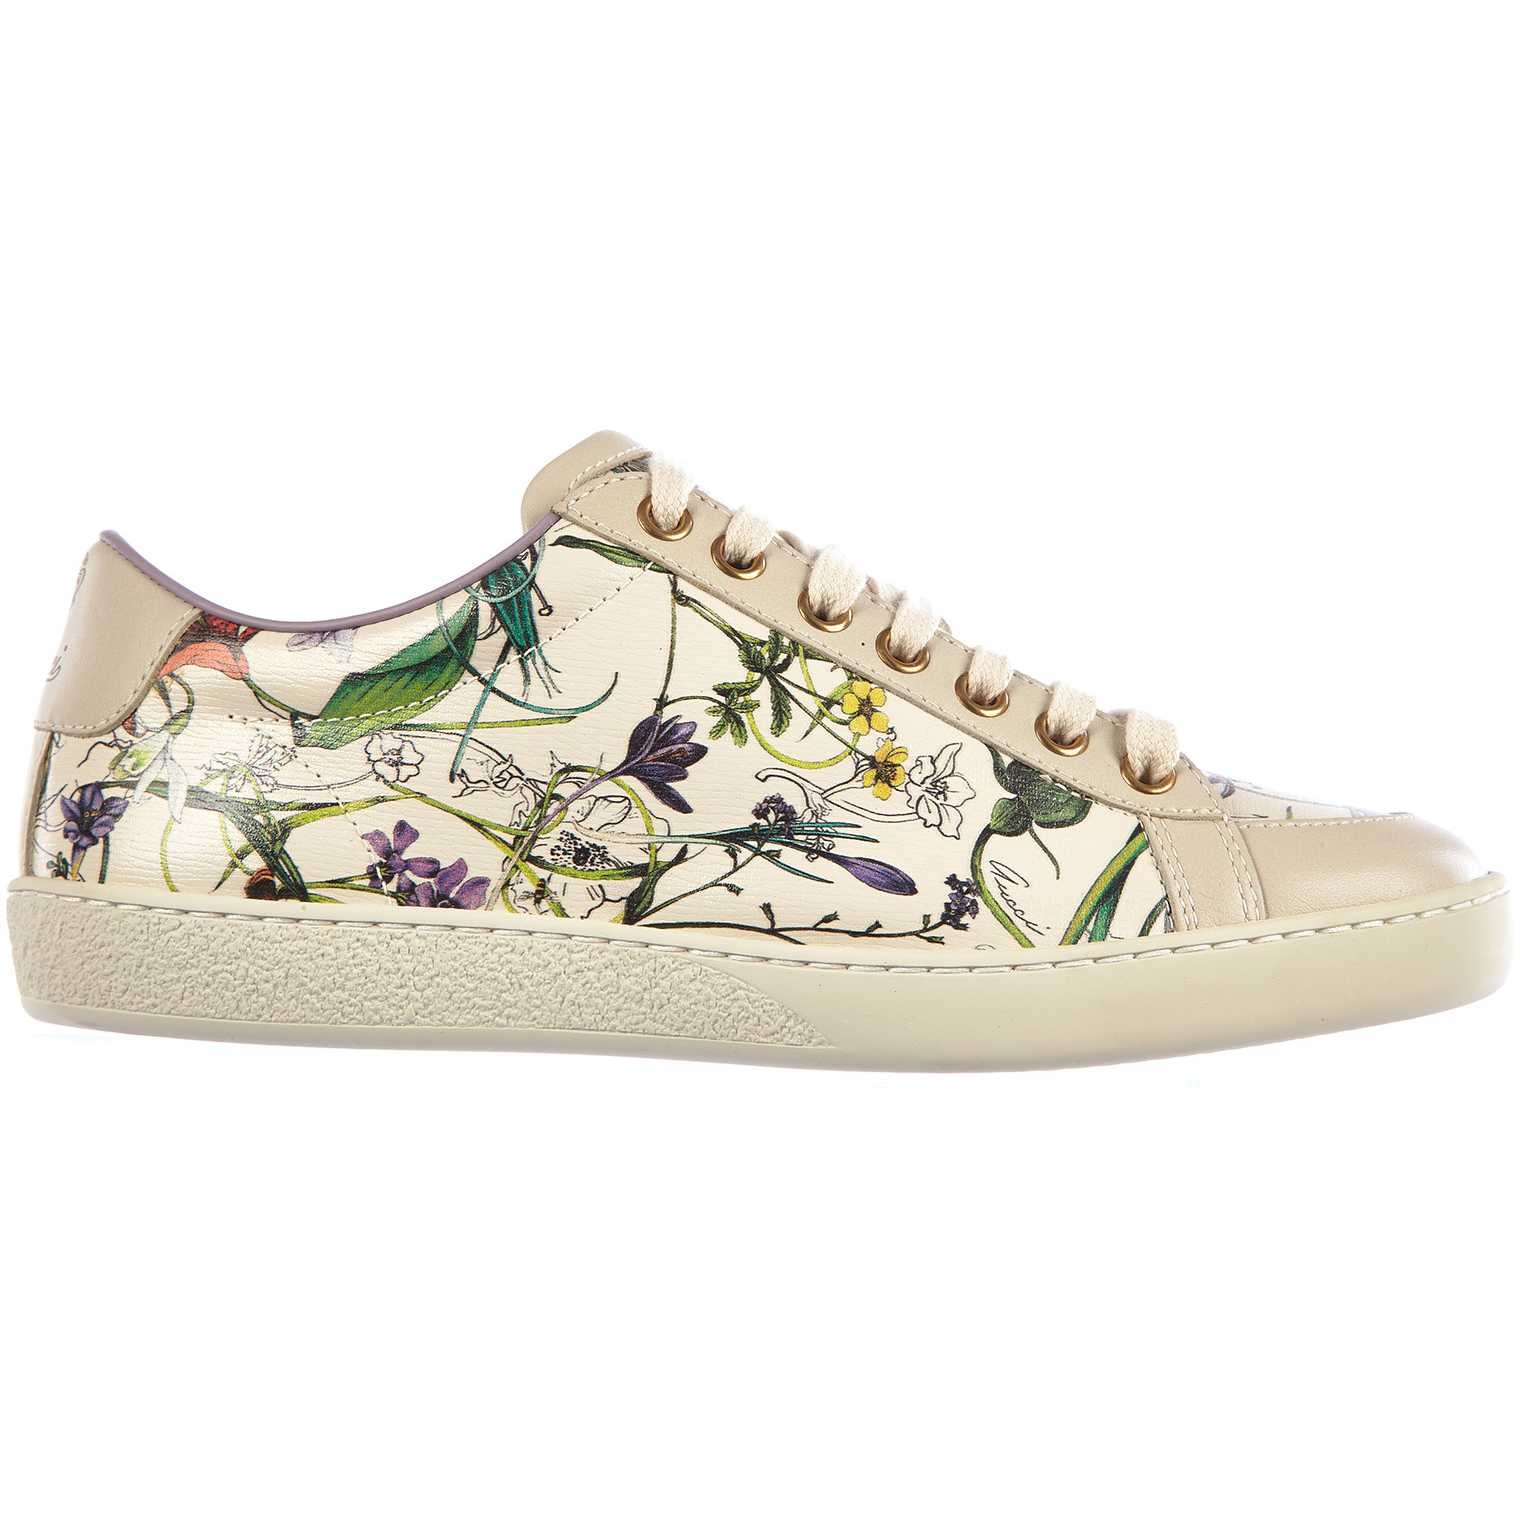 Gucci Leather Sneakers White pentru dama